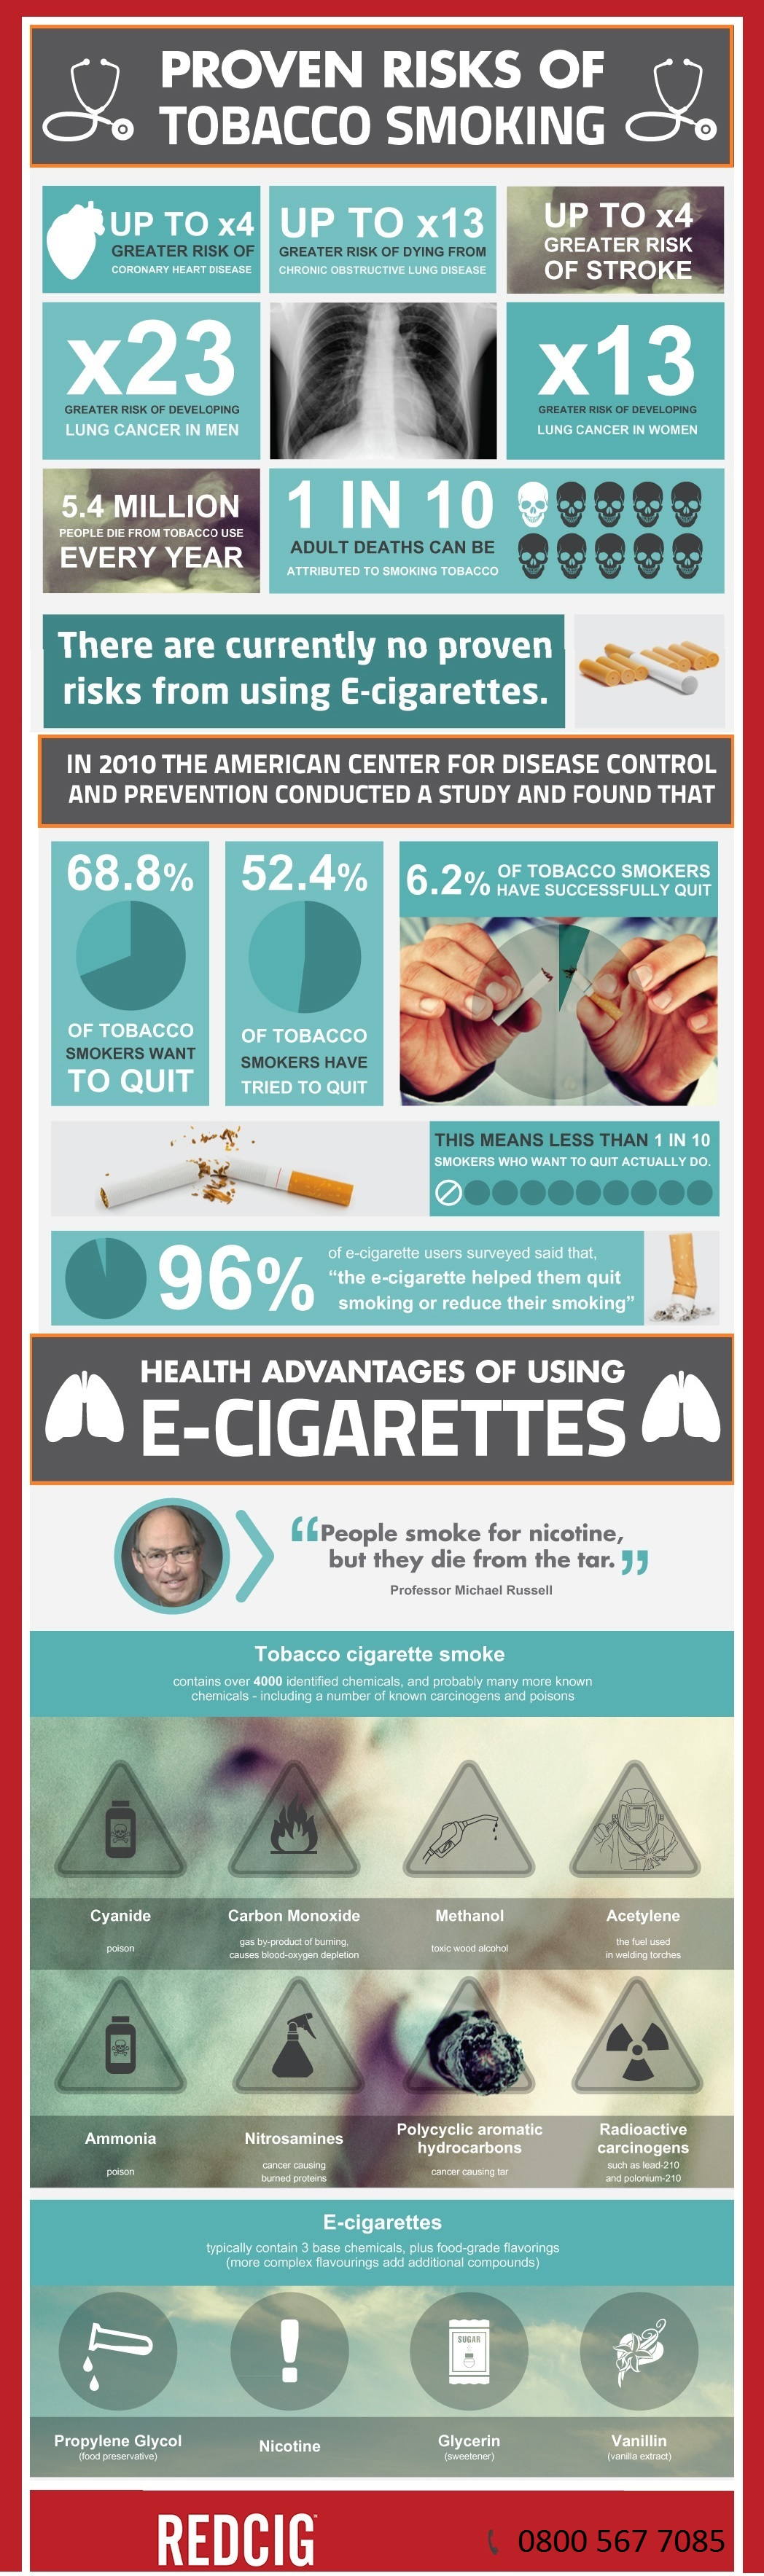 Proven Risks Of Tobacco Smoking